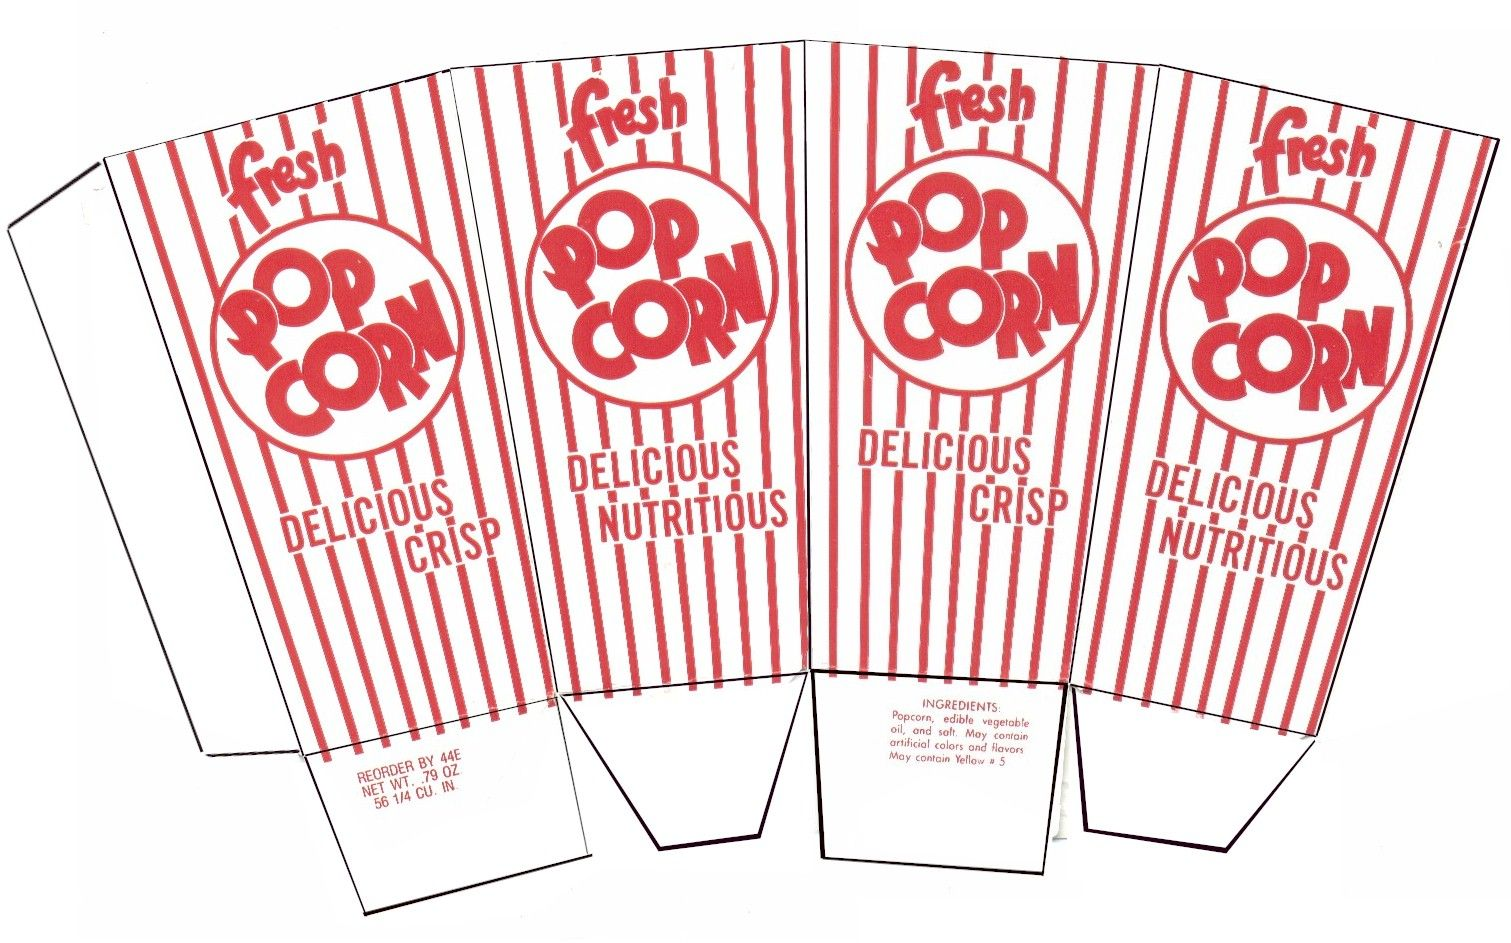 photograph about Popcorn Box Printable titled THE ELF Upon THE SHELF~Popcorn Box (scale down inside graphics